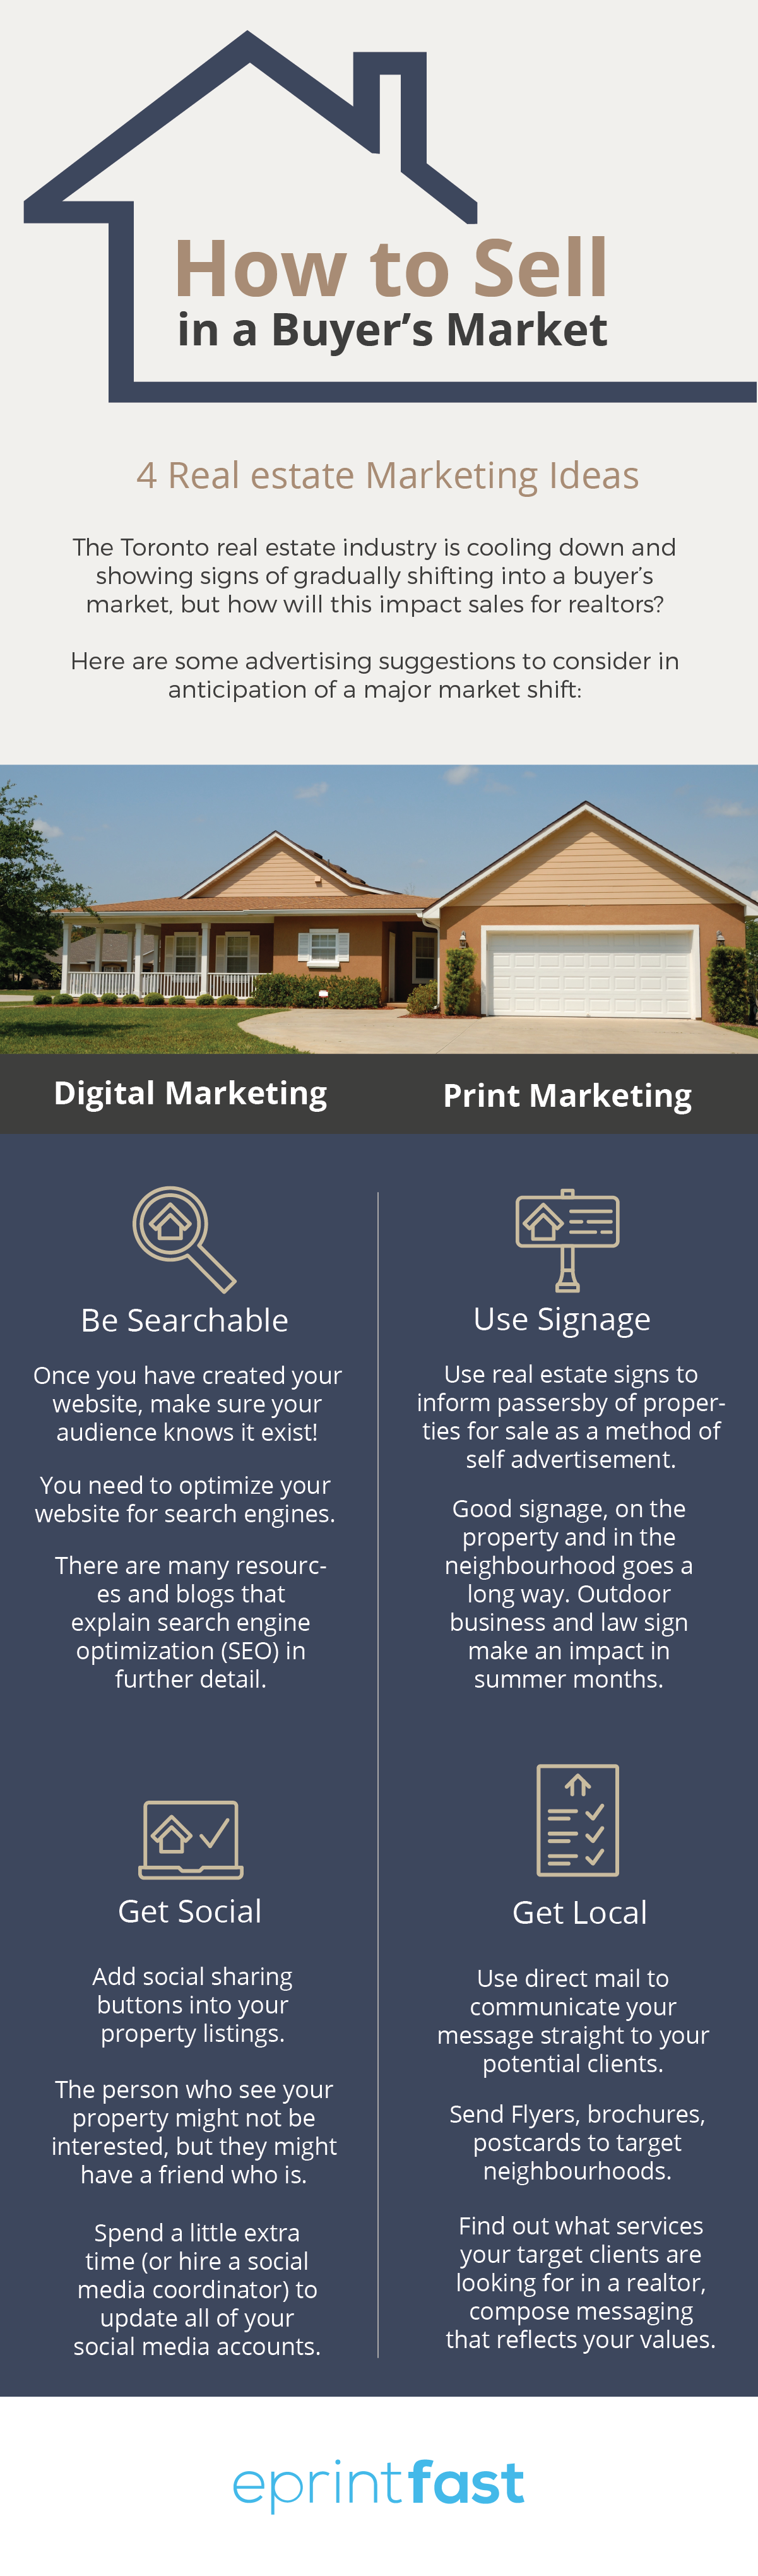 how-to-sell-in-a-buyers-market-infographic-plaza